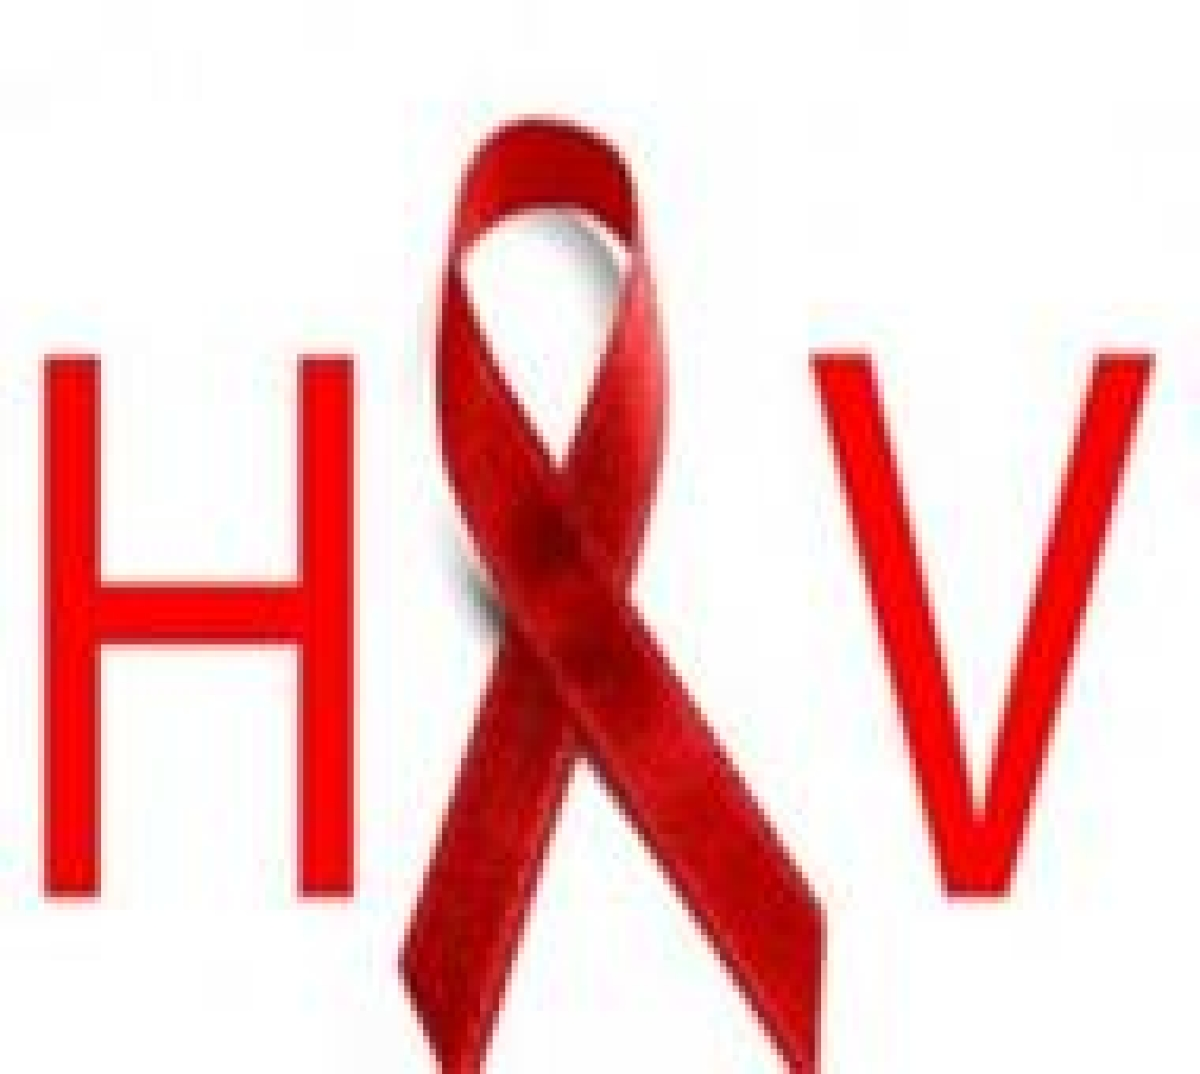 Homosexual men in small cities less likely to be tested for HIV